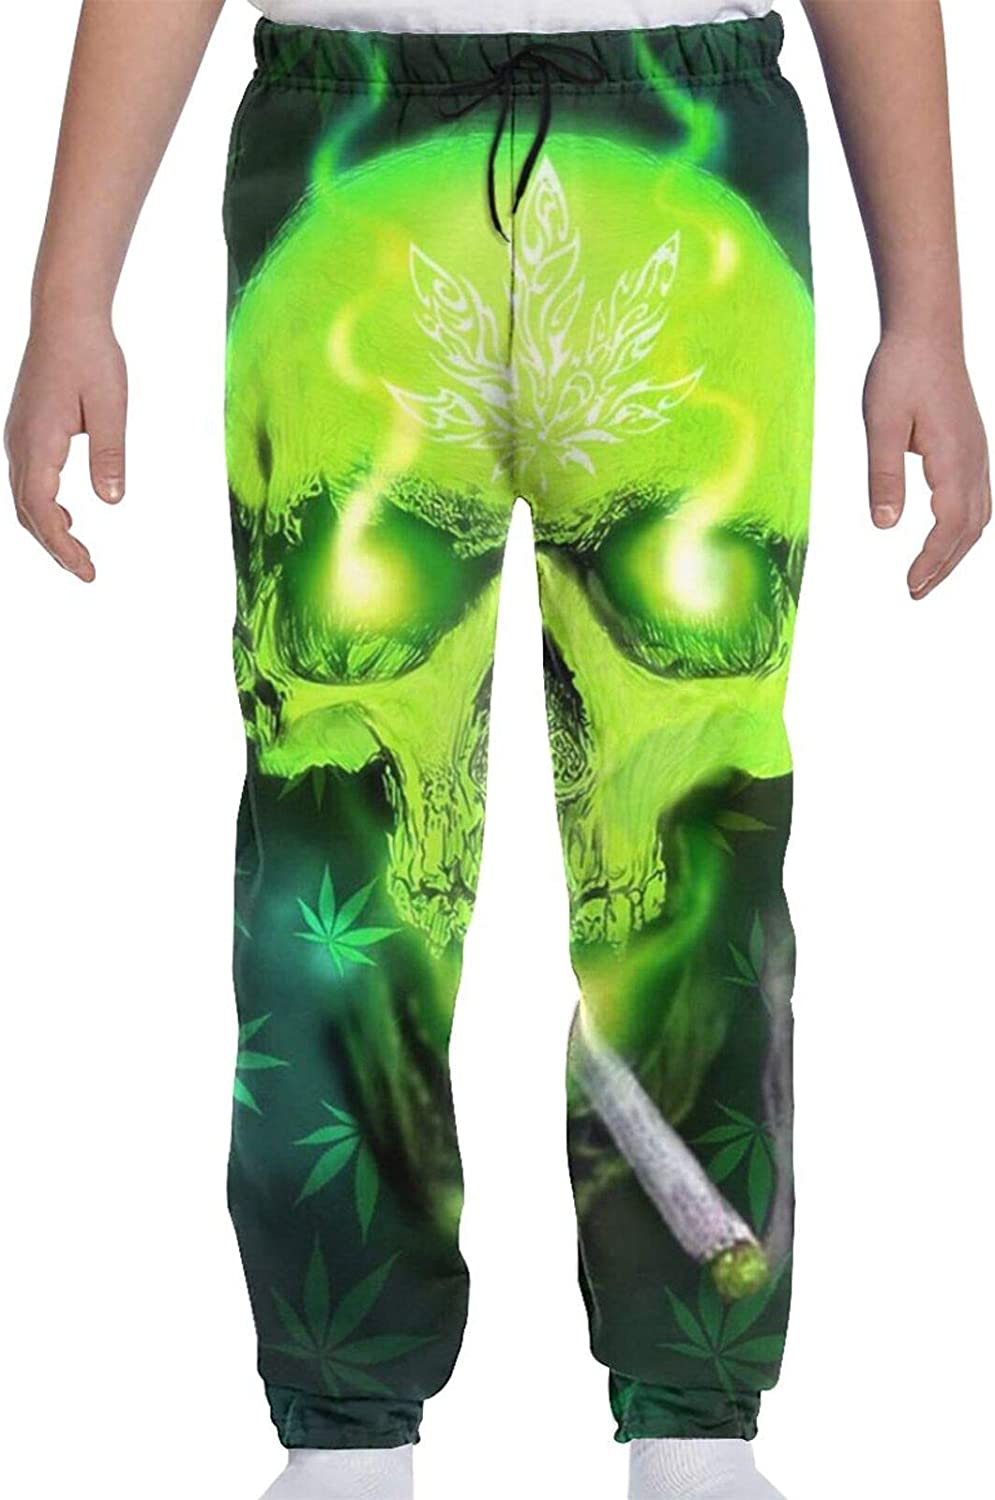 HARLEY BURTON Youth Sweatpants Marijuana Skull Max 71% OFF Our shop OFFers the best service Psychedelic Boys